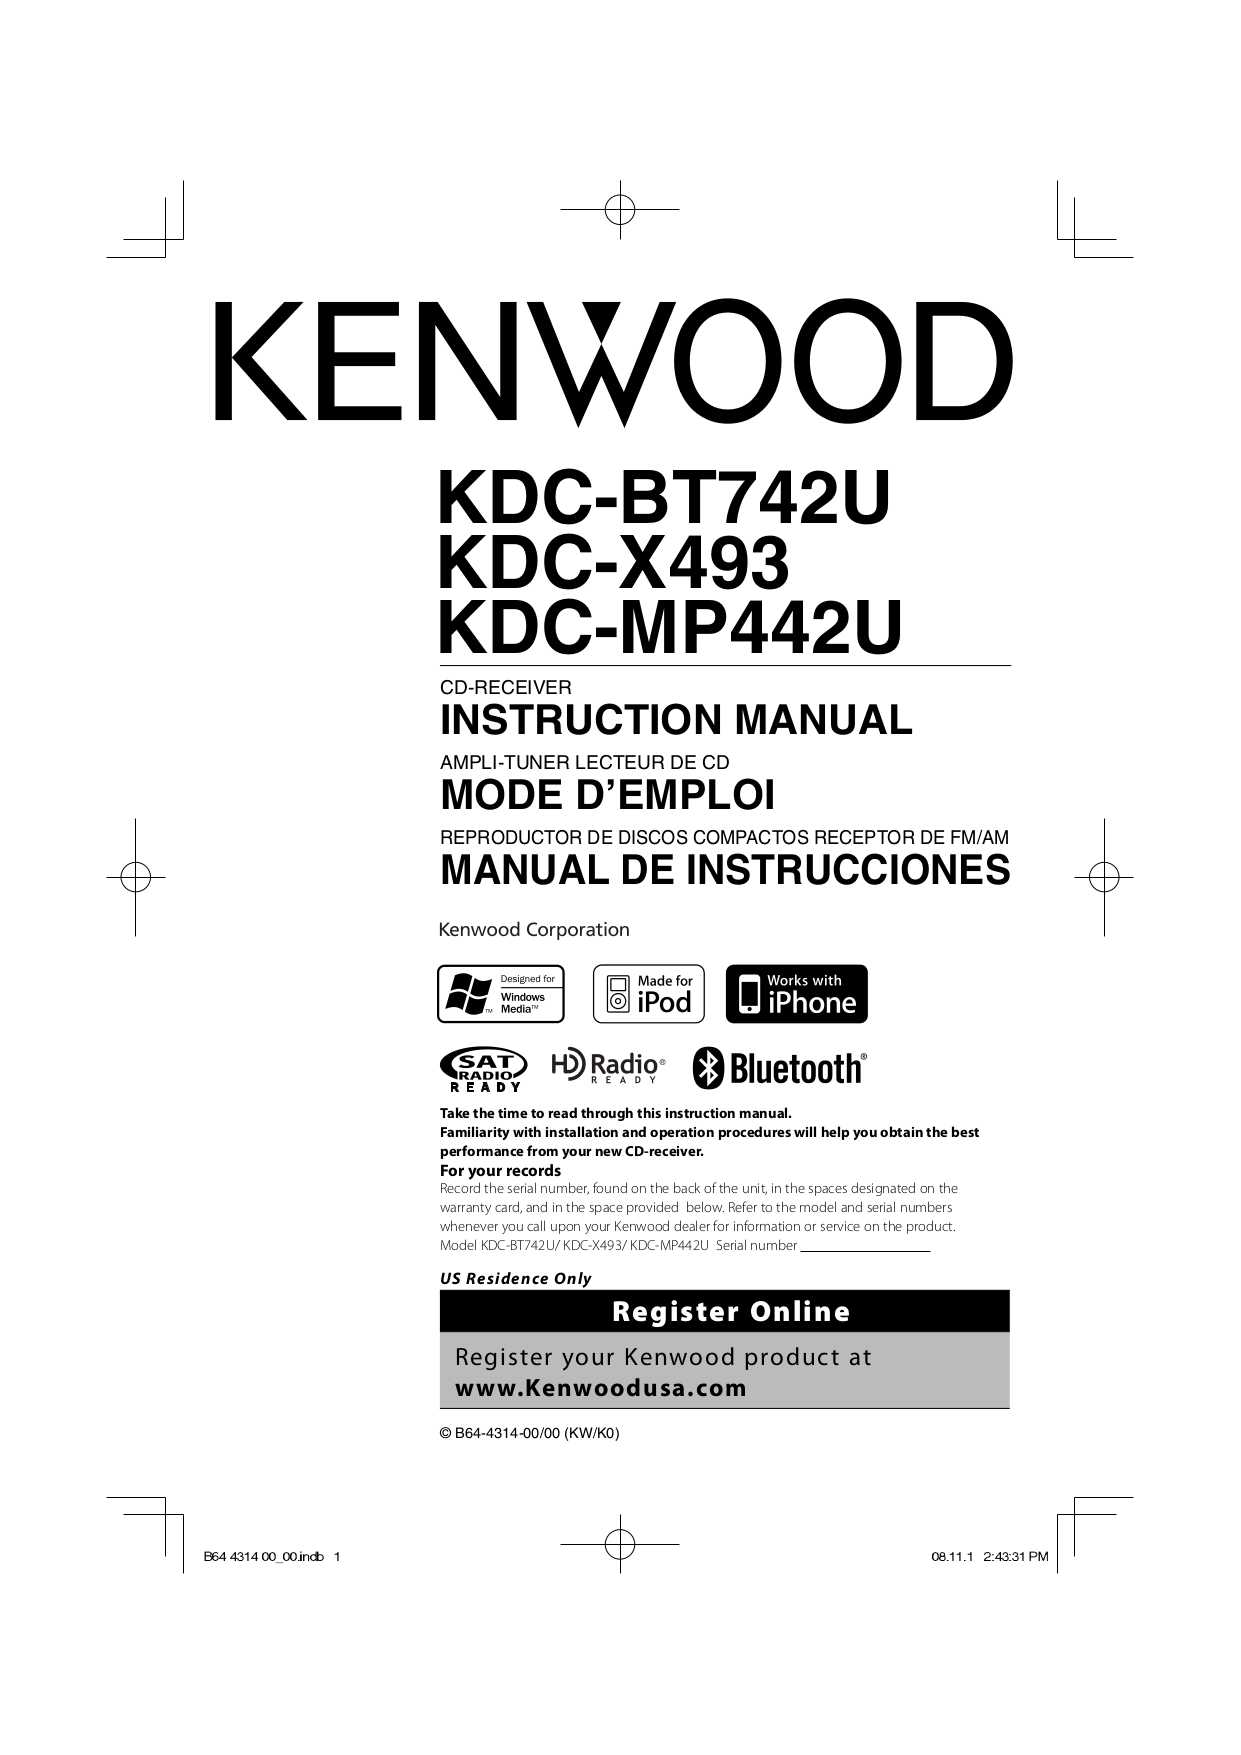 Kenwood kdc 122 wiring diagram wiring diagrams schematics kenwood kdc 122 wiring diagram colors wiring diagram colorful kdc x498 wiring diagram illustration electrical and kenwood kdc 108 wiring harness kenwood kdc asfbconference2016 Images